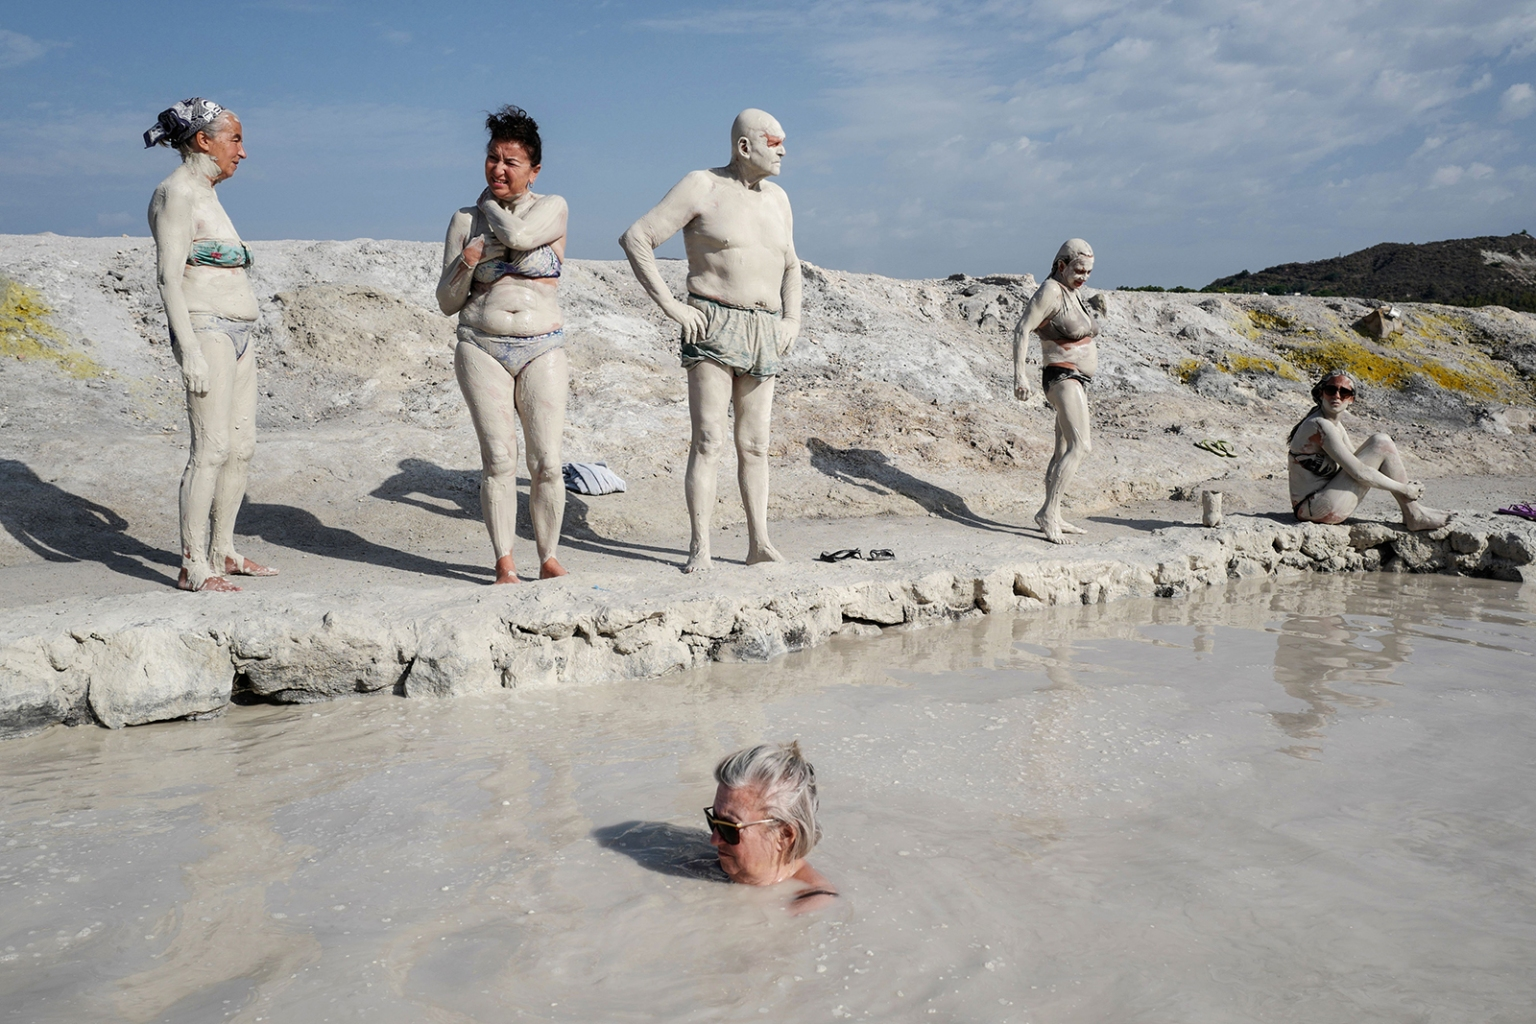 People bath in sulphurous mud on the volcanic island of Vulcano, one of the Aeolian Islands, in the Tyrrhenian Sea, Italy, on Sept. 19. VALERY HACHE/AFP/Getty Images